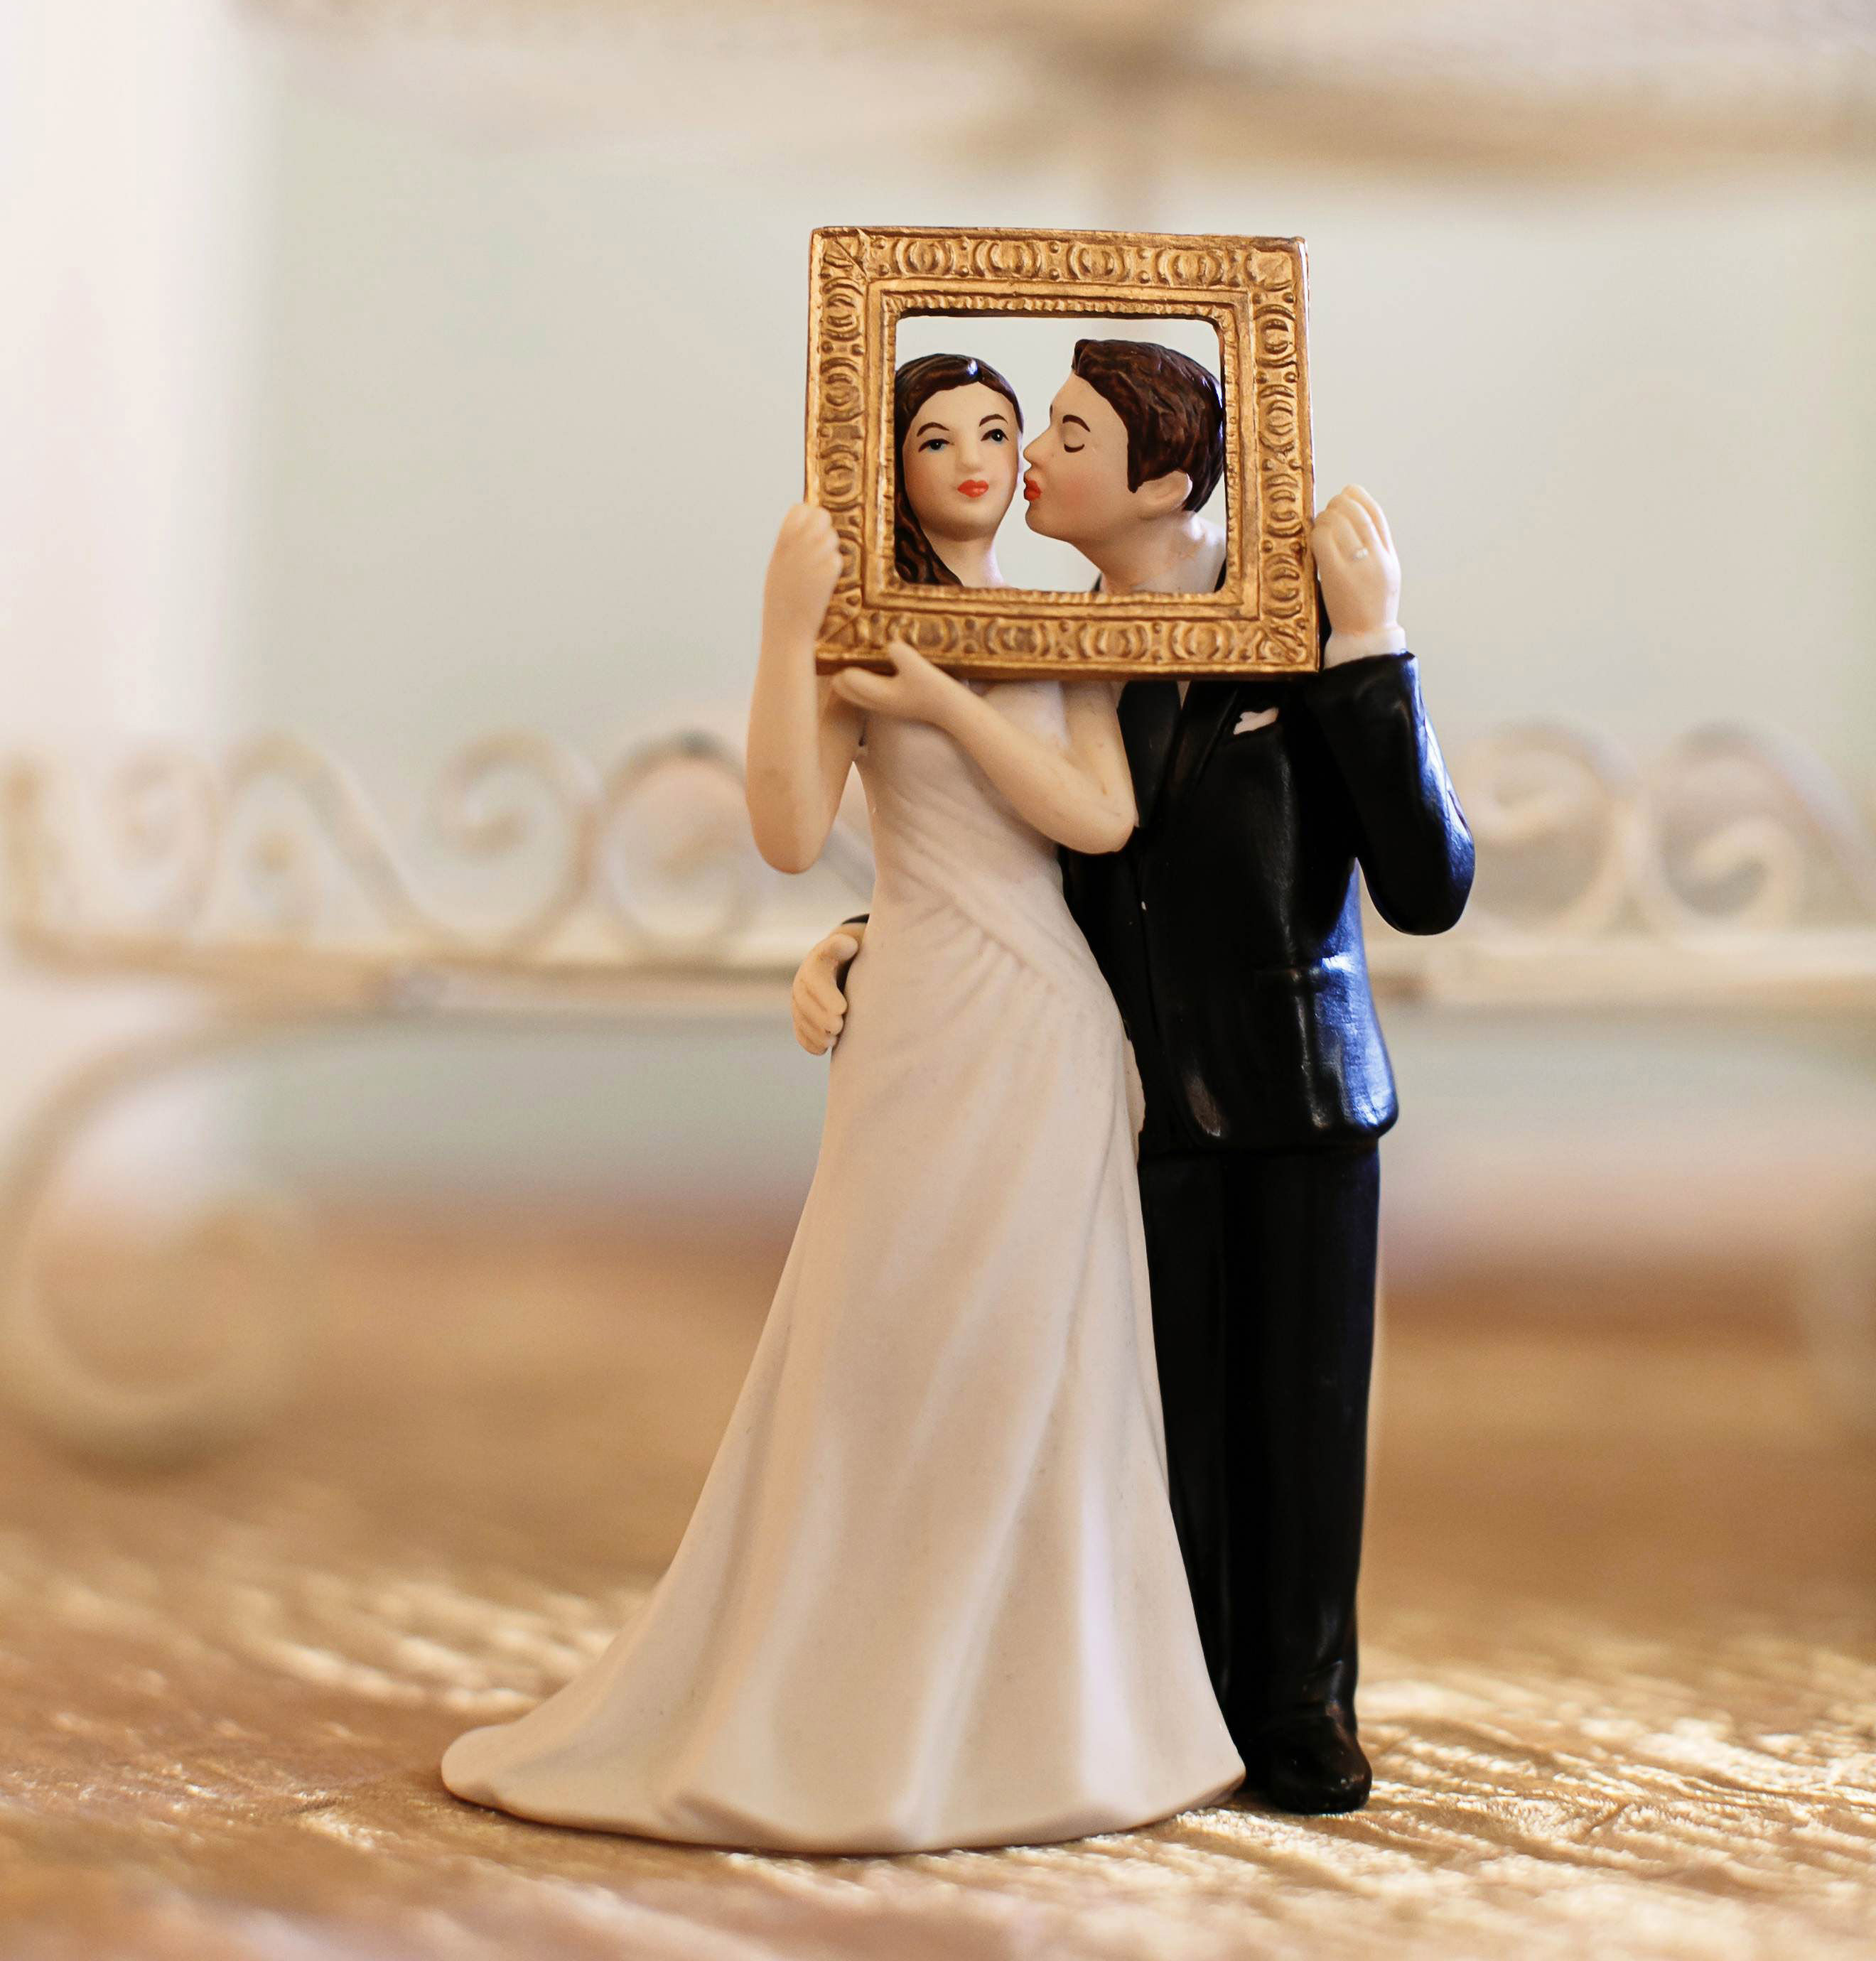 cake topper with bride and groom holding an ornate gold frame